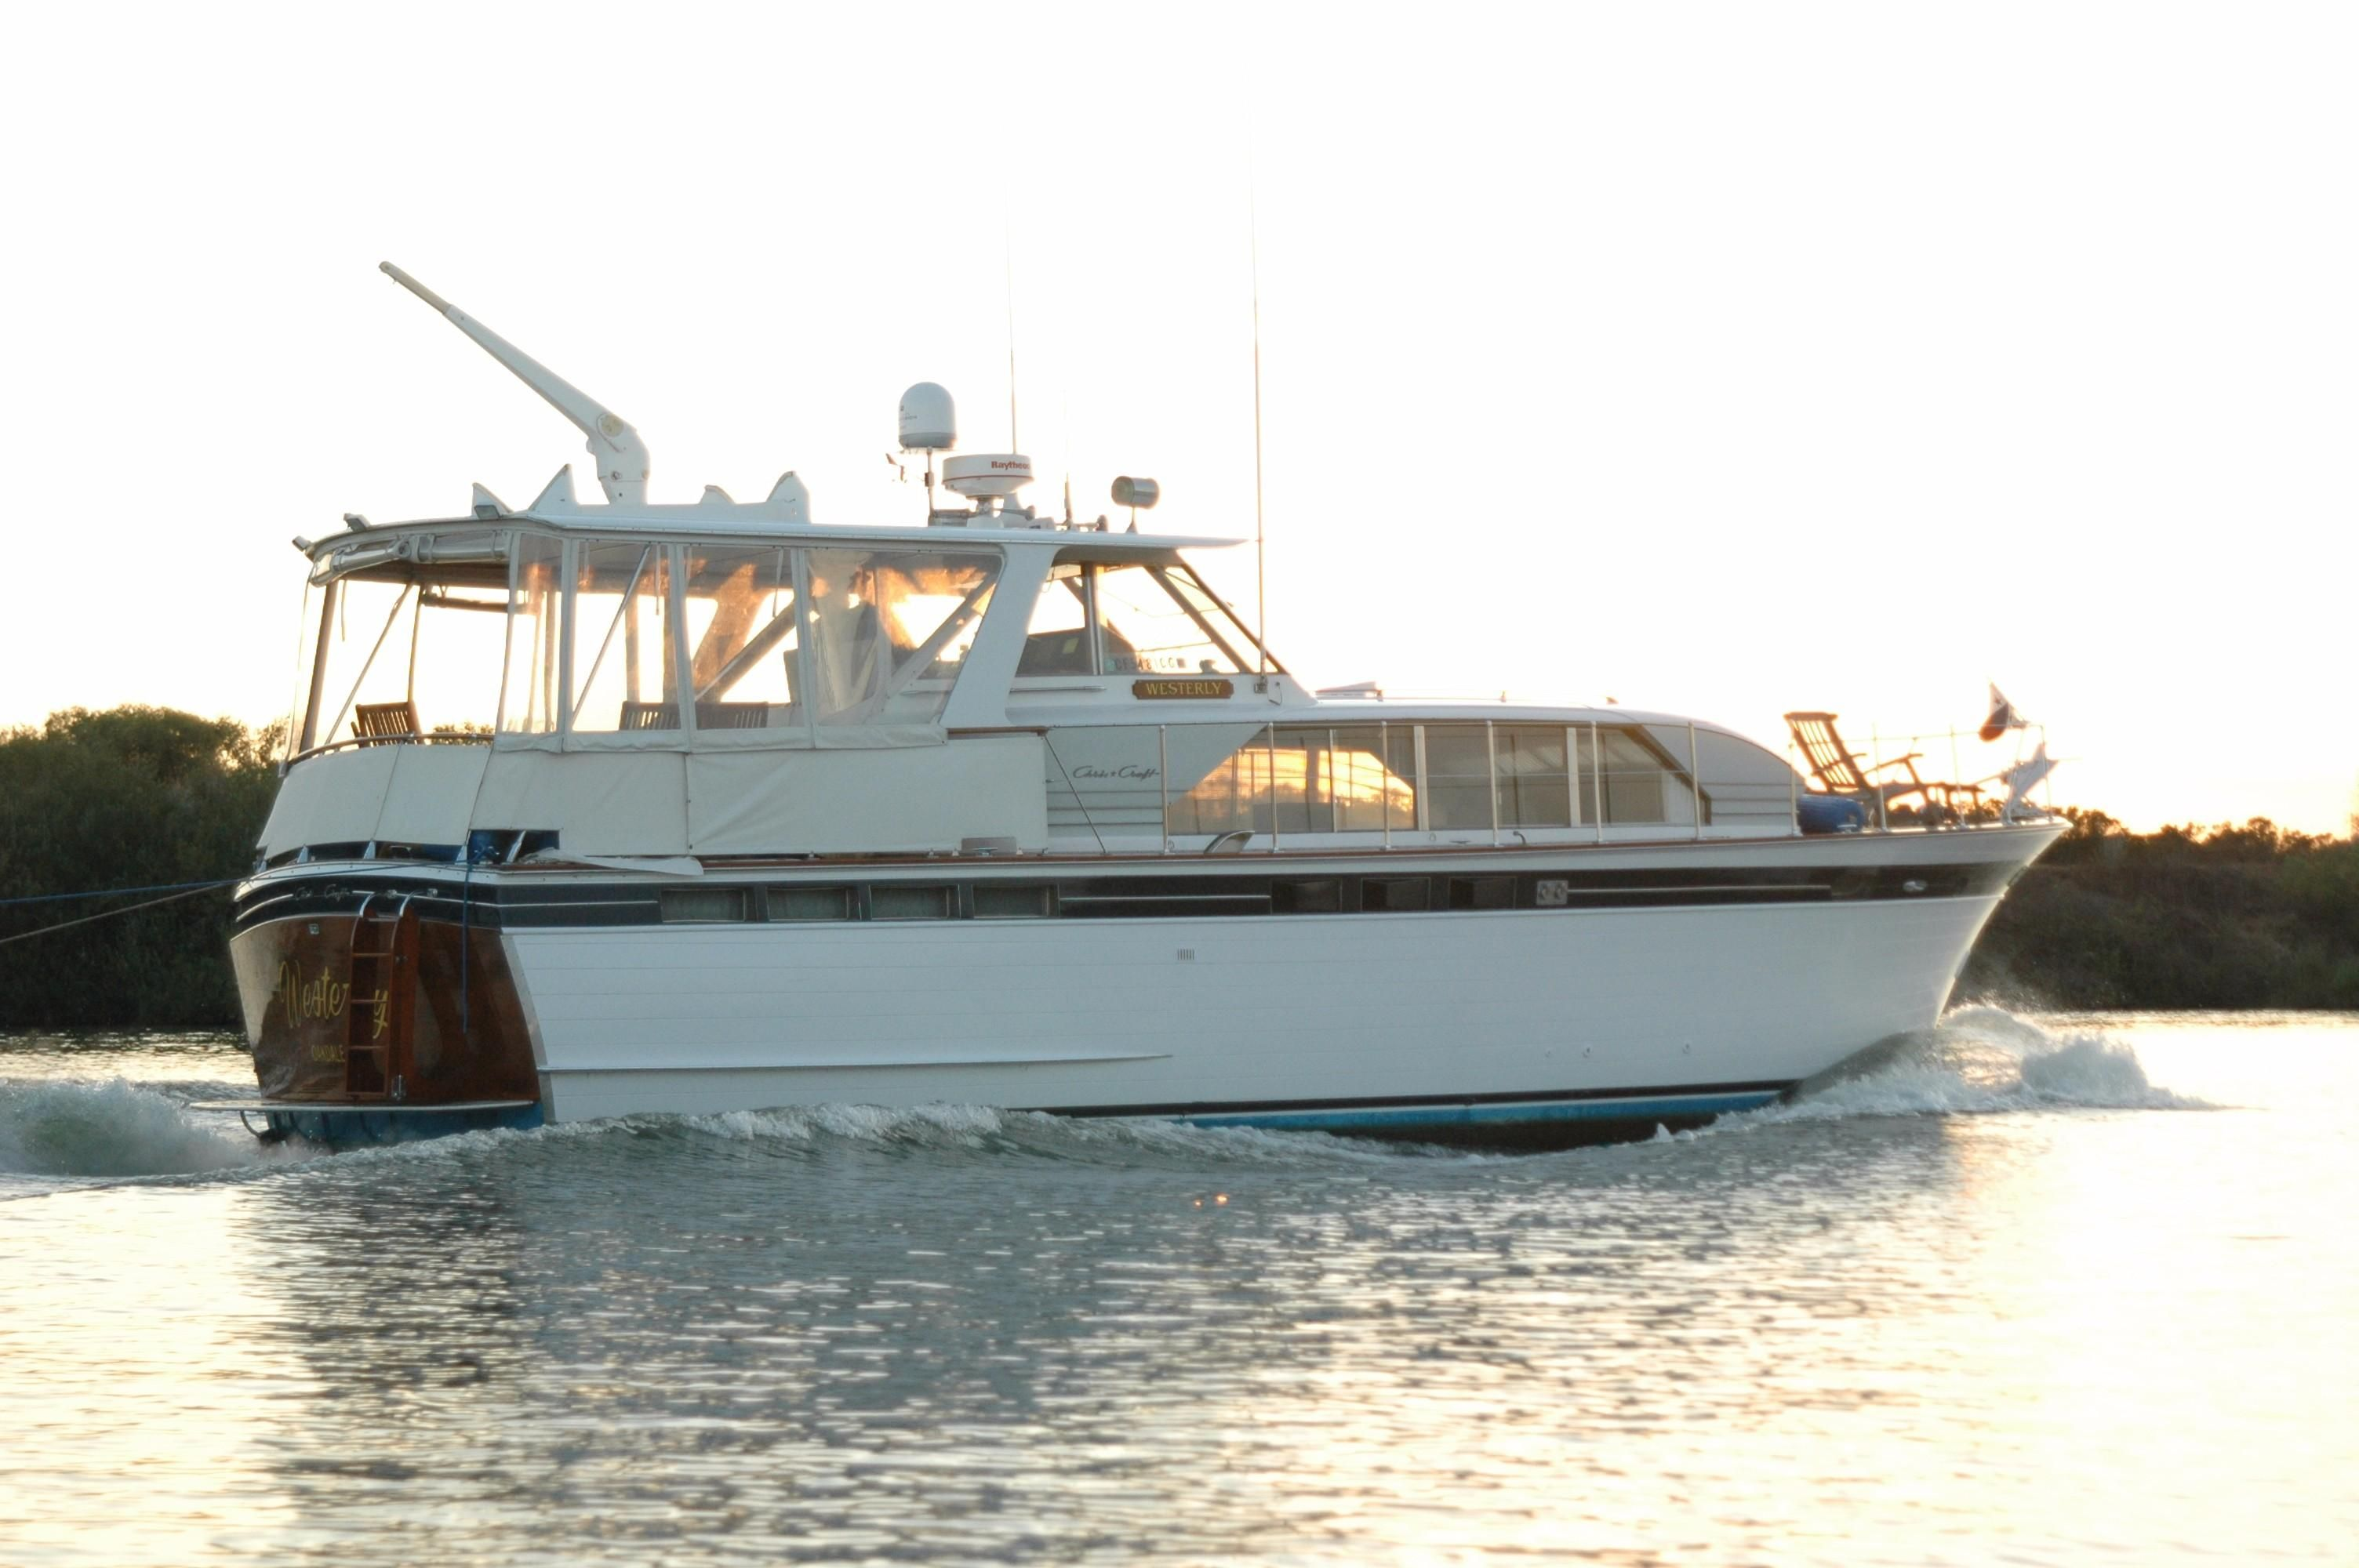 1965 Chris Craft Constellation Power Boat For Sale Www